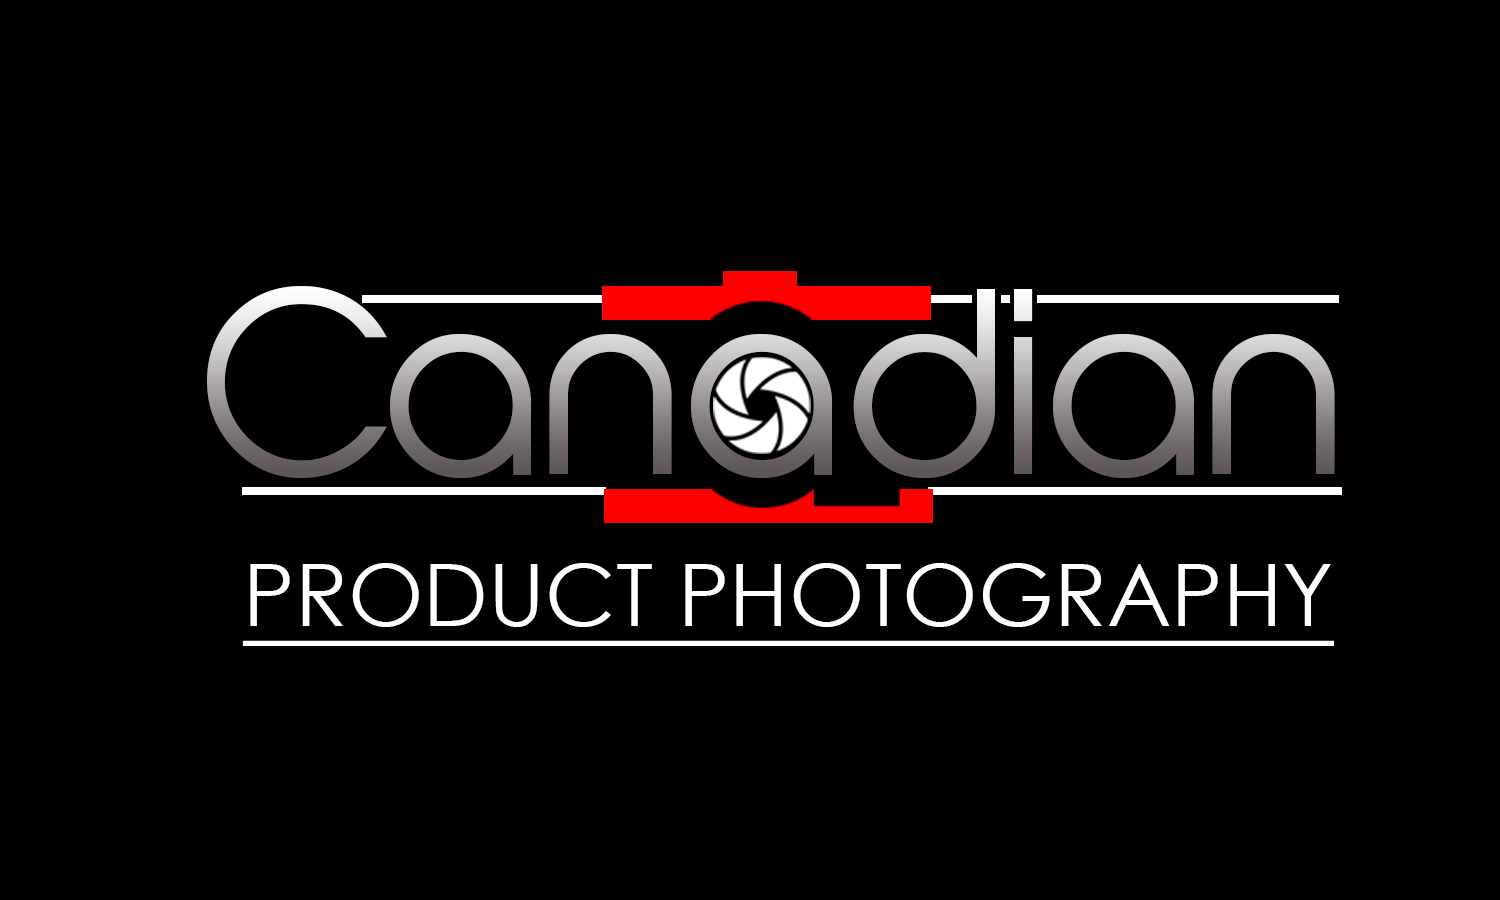 Logo Design by Joeker Polkadots - Entry No. 71 in the Logo Design Contest Artistic Logo Design for Canadian Product Photography.